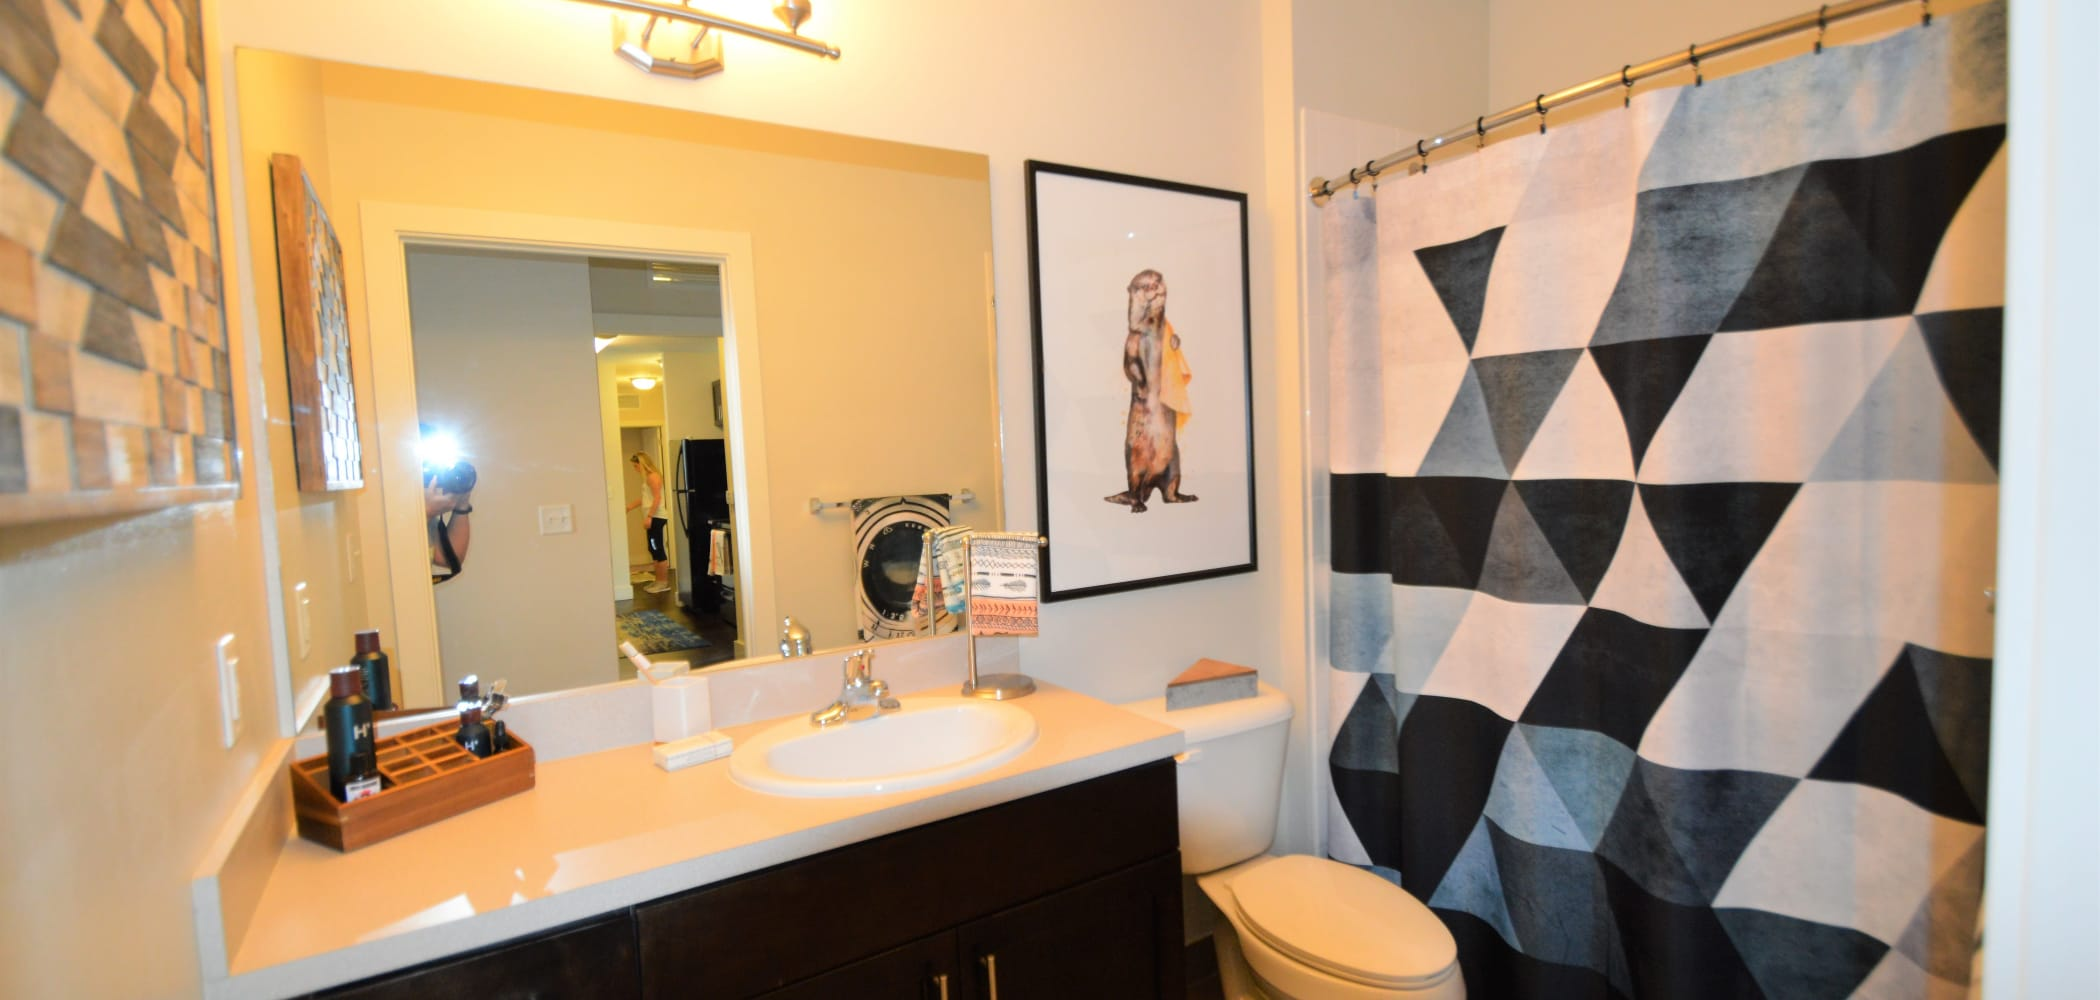 Bathroom with large mirror at University Park in Boca Raton, Florida